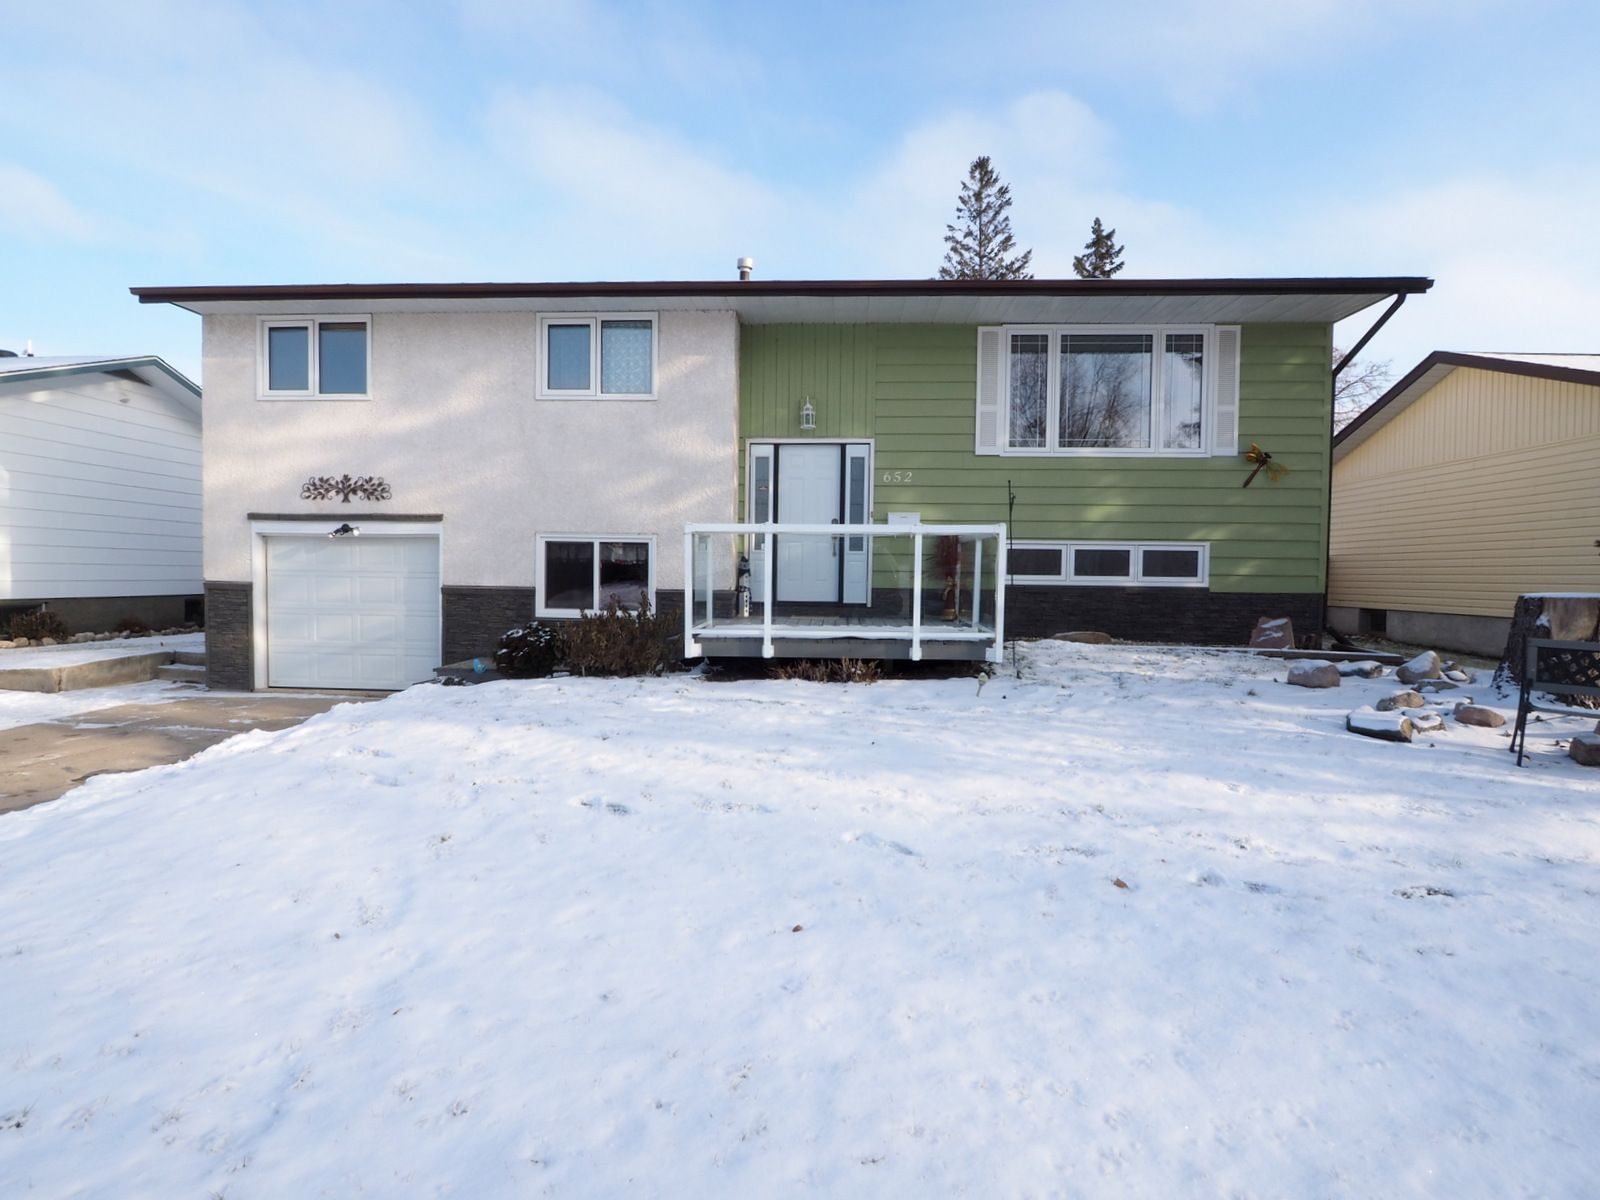 Main Photo: 652 1st Street NW in Portage la Prairie: House for sale : MLS®# 202028351